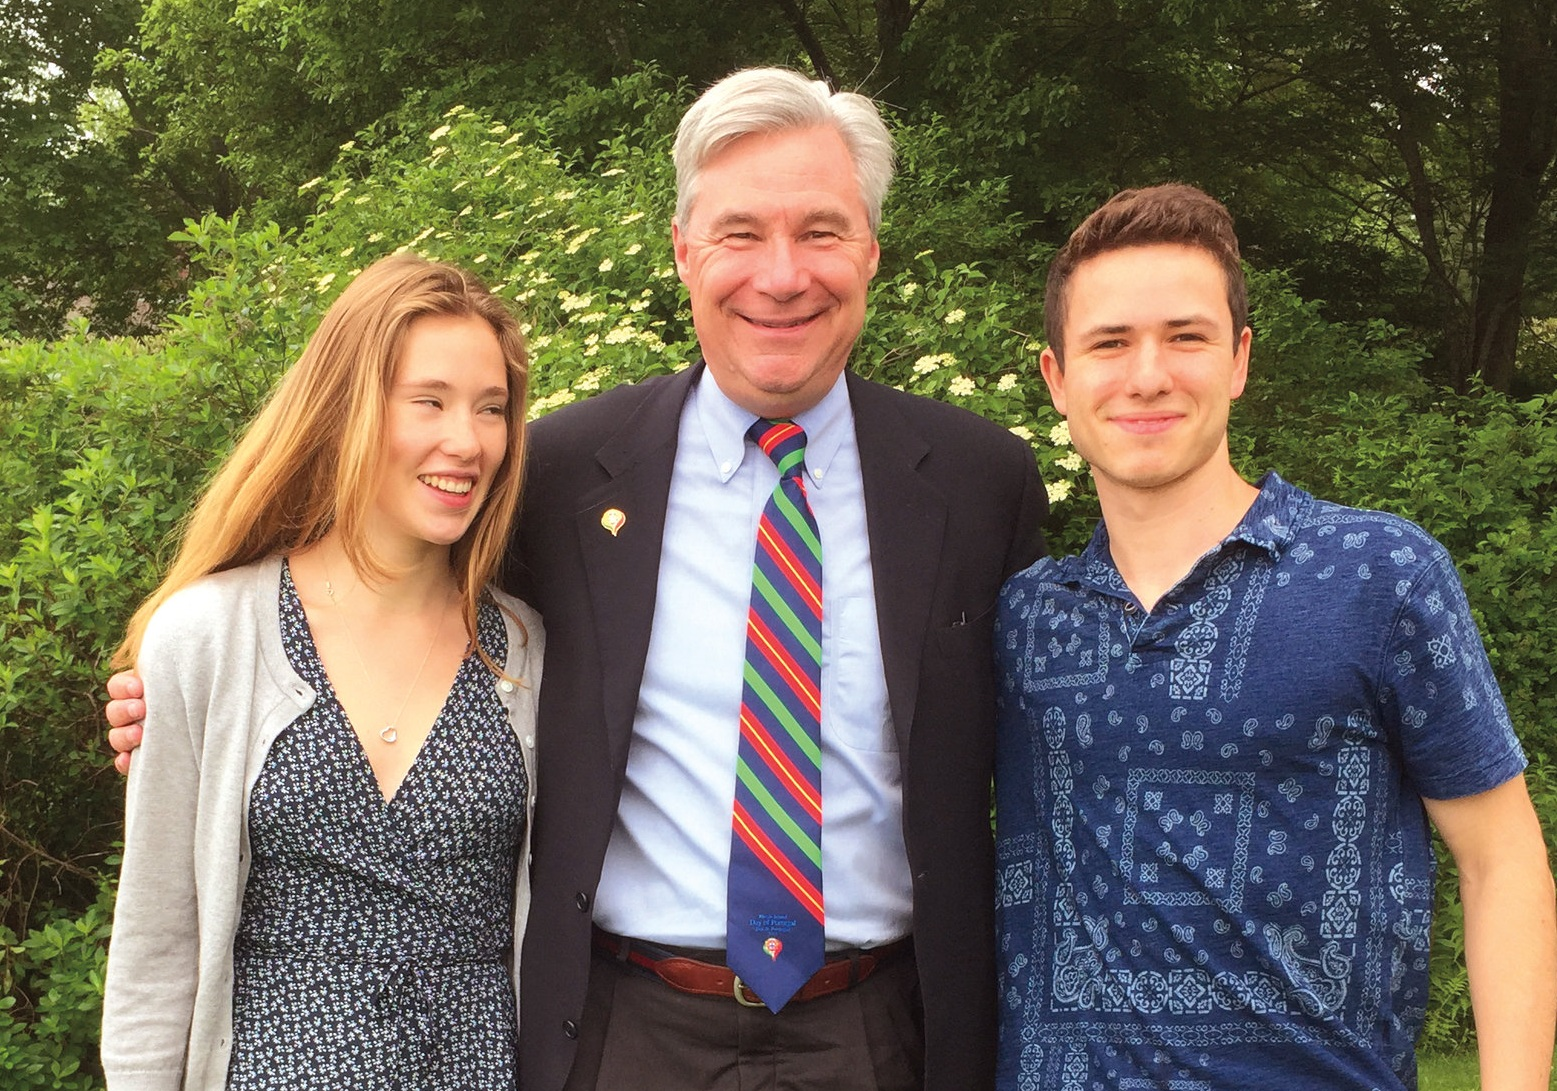 Georgia Channing '17 (l.), Santiago Saravia '17 (r.), and Sheldon Whitehouse '74 at a Saunderstown, R.I., fundraiser for Sheldon's U.S. Senate re-election.